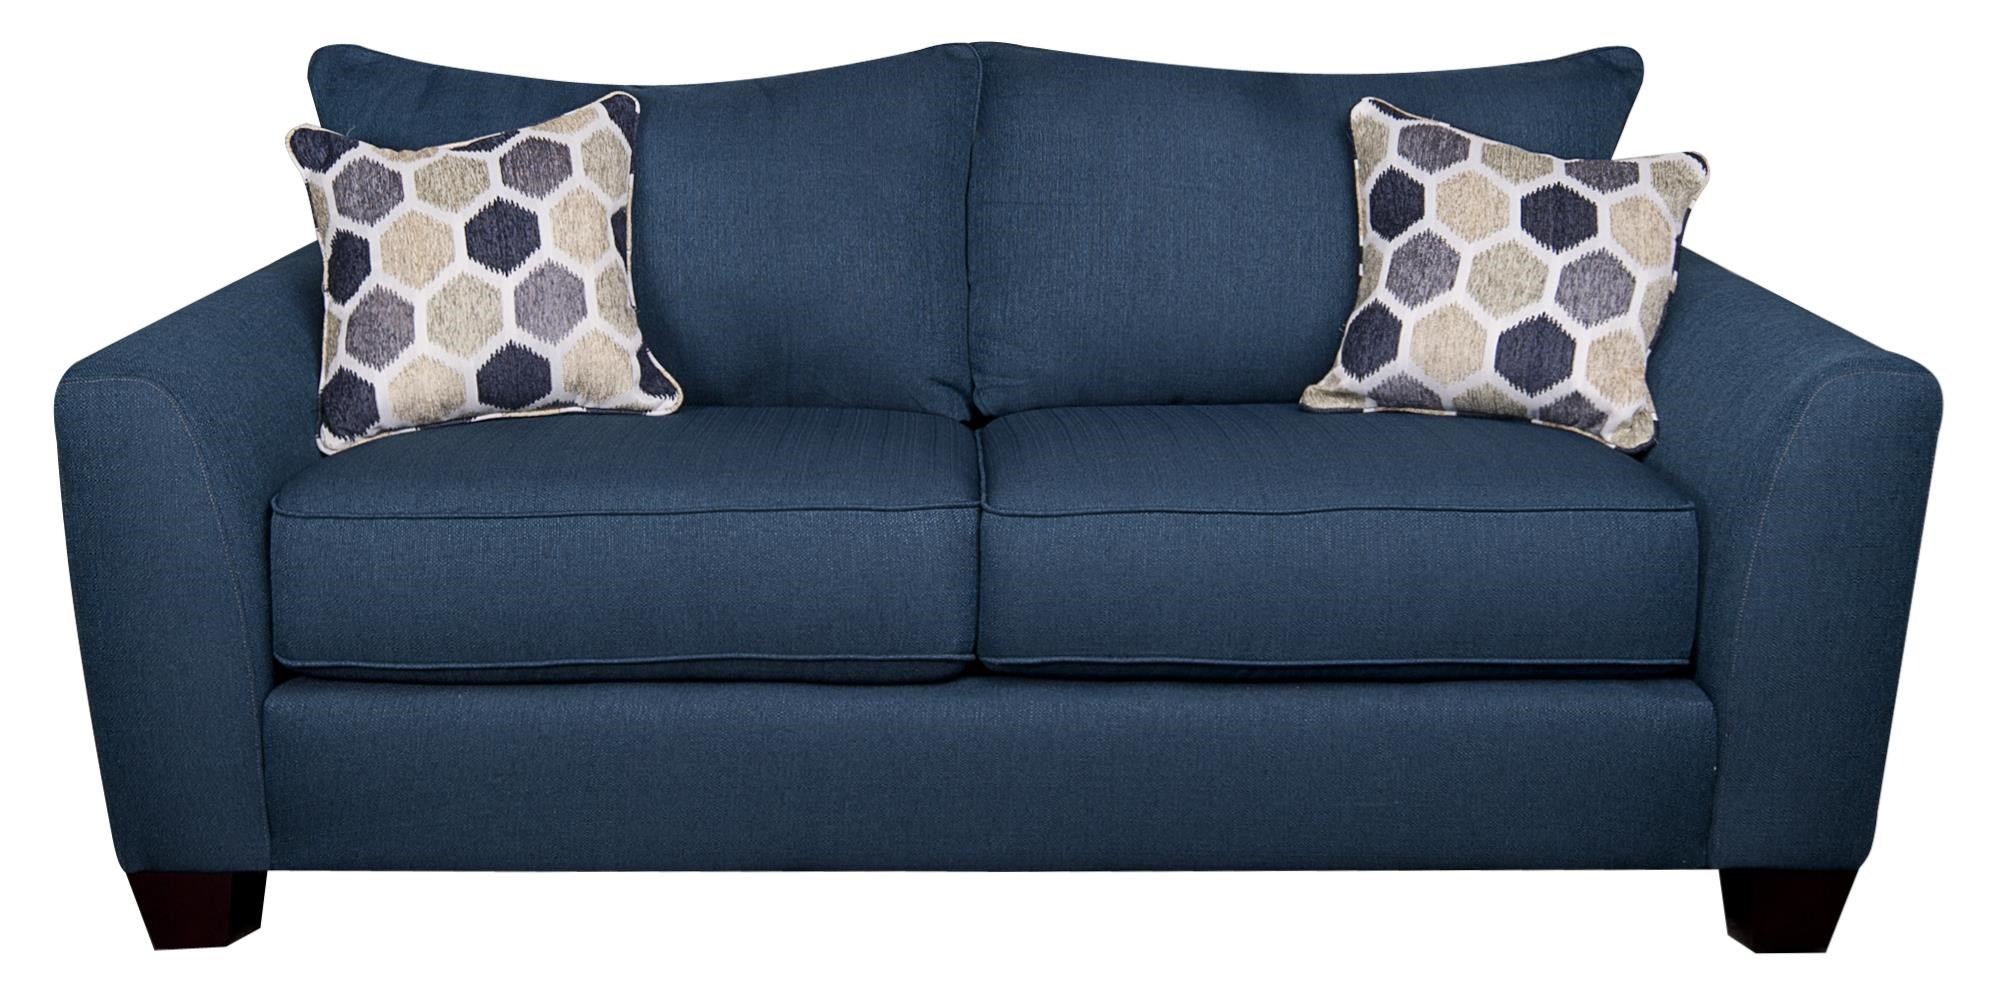 Morris Home Furnishings Remedy Remedy Loveseat - Item Number: 113427697